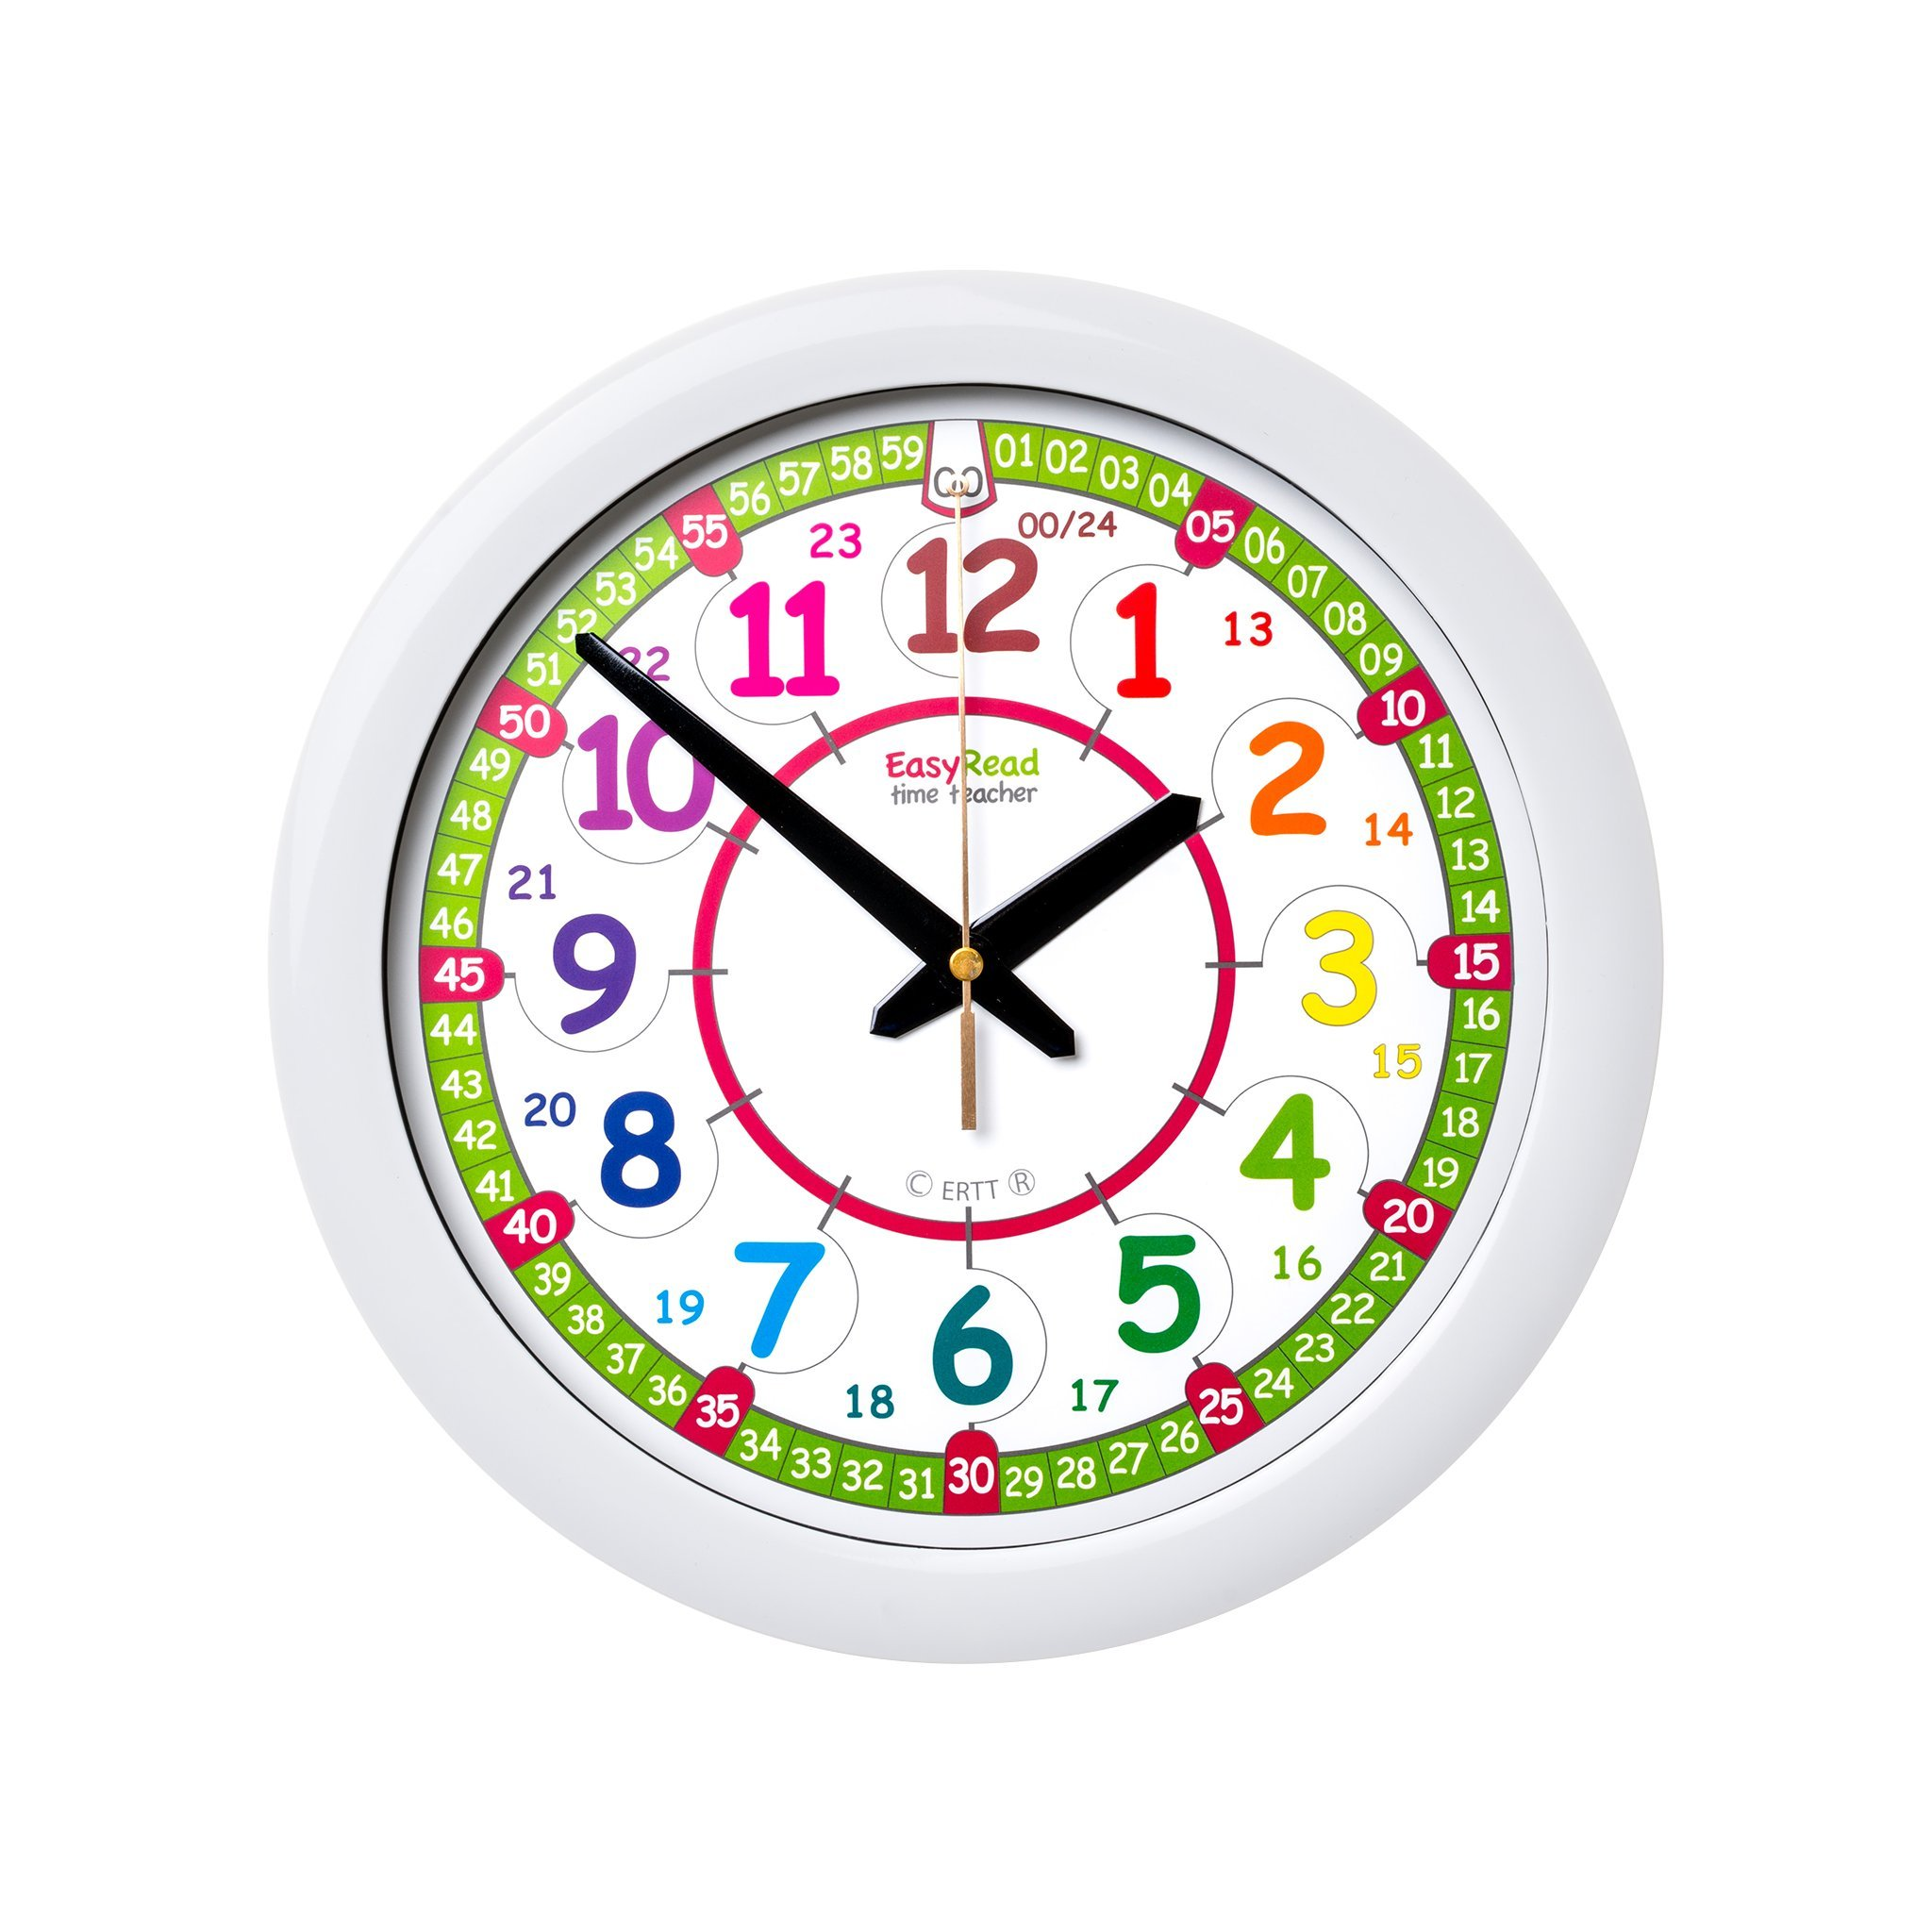 EasyRead Time Teacher Children's Wall Clock, 12 & 24 Hour with silent movement. Learn to tell the time in 2 simple steps, for children age 5-12. by EasyRead Time Teacher